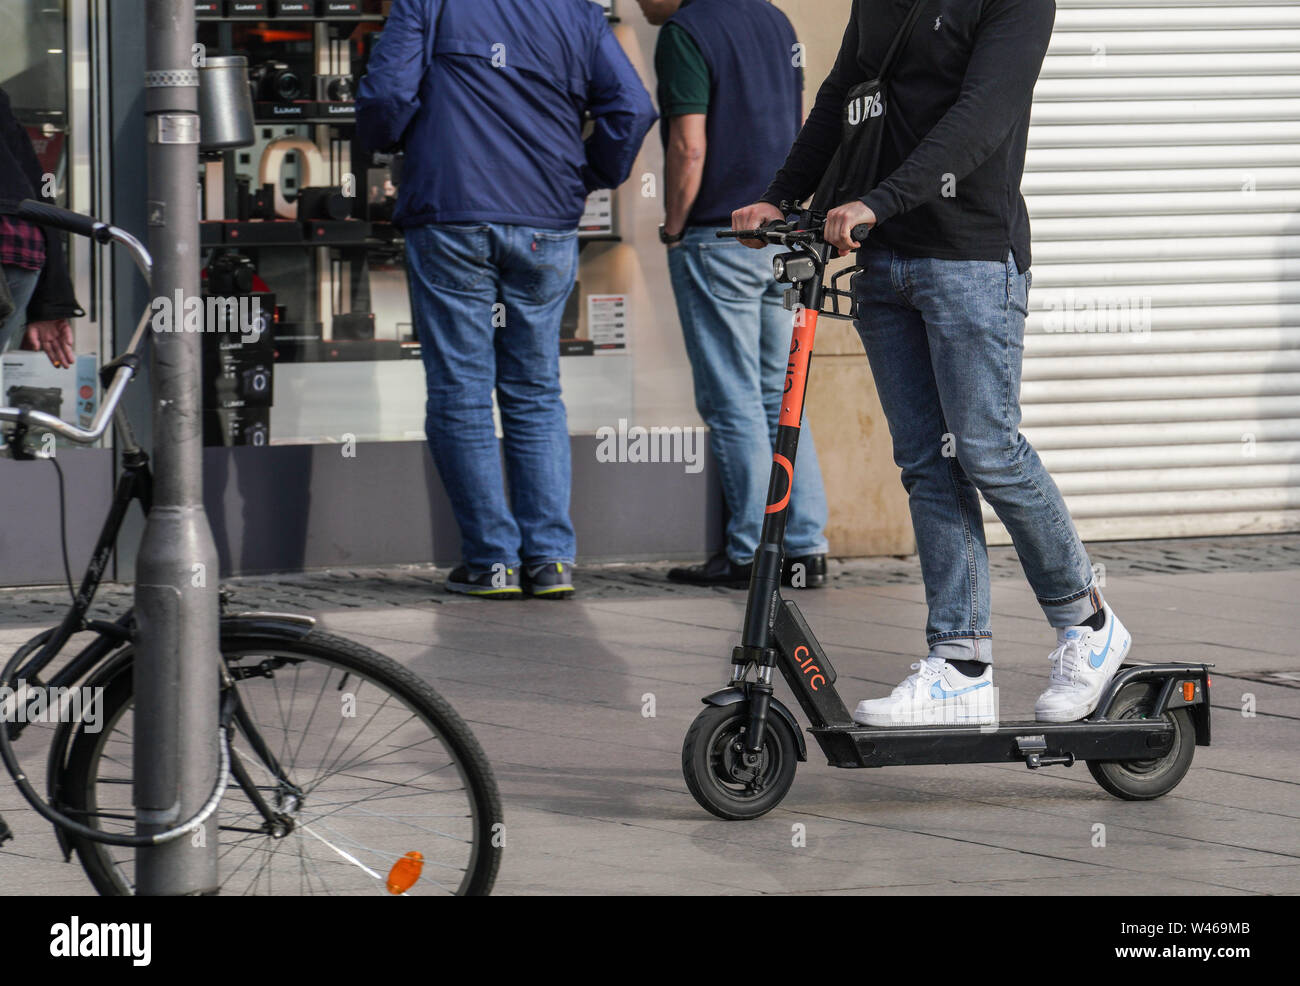 15 July 2019, Hessen, Frankfurt/Main: A man drives on a rented e-scooter on the sidewalk in the city center. Photo: Frank Rumpenhorst/dpa - Stock Image